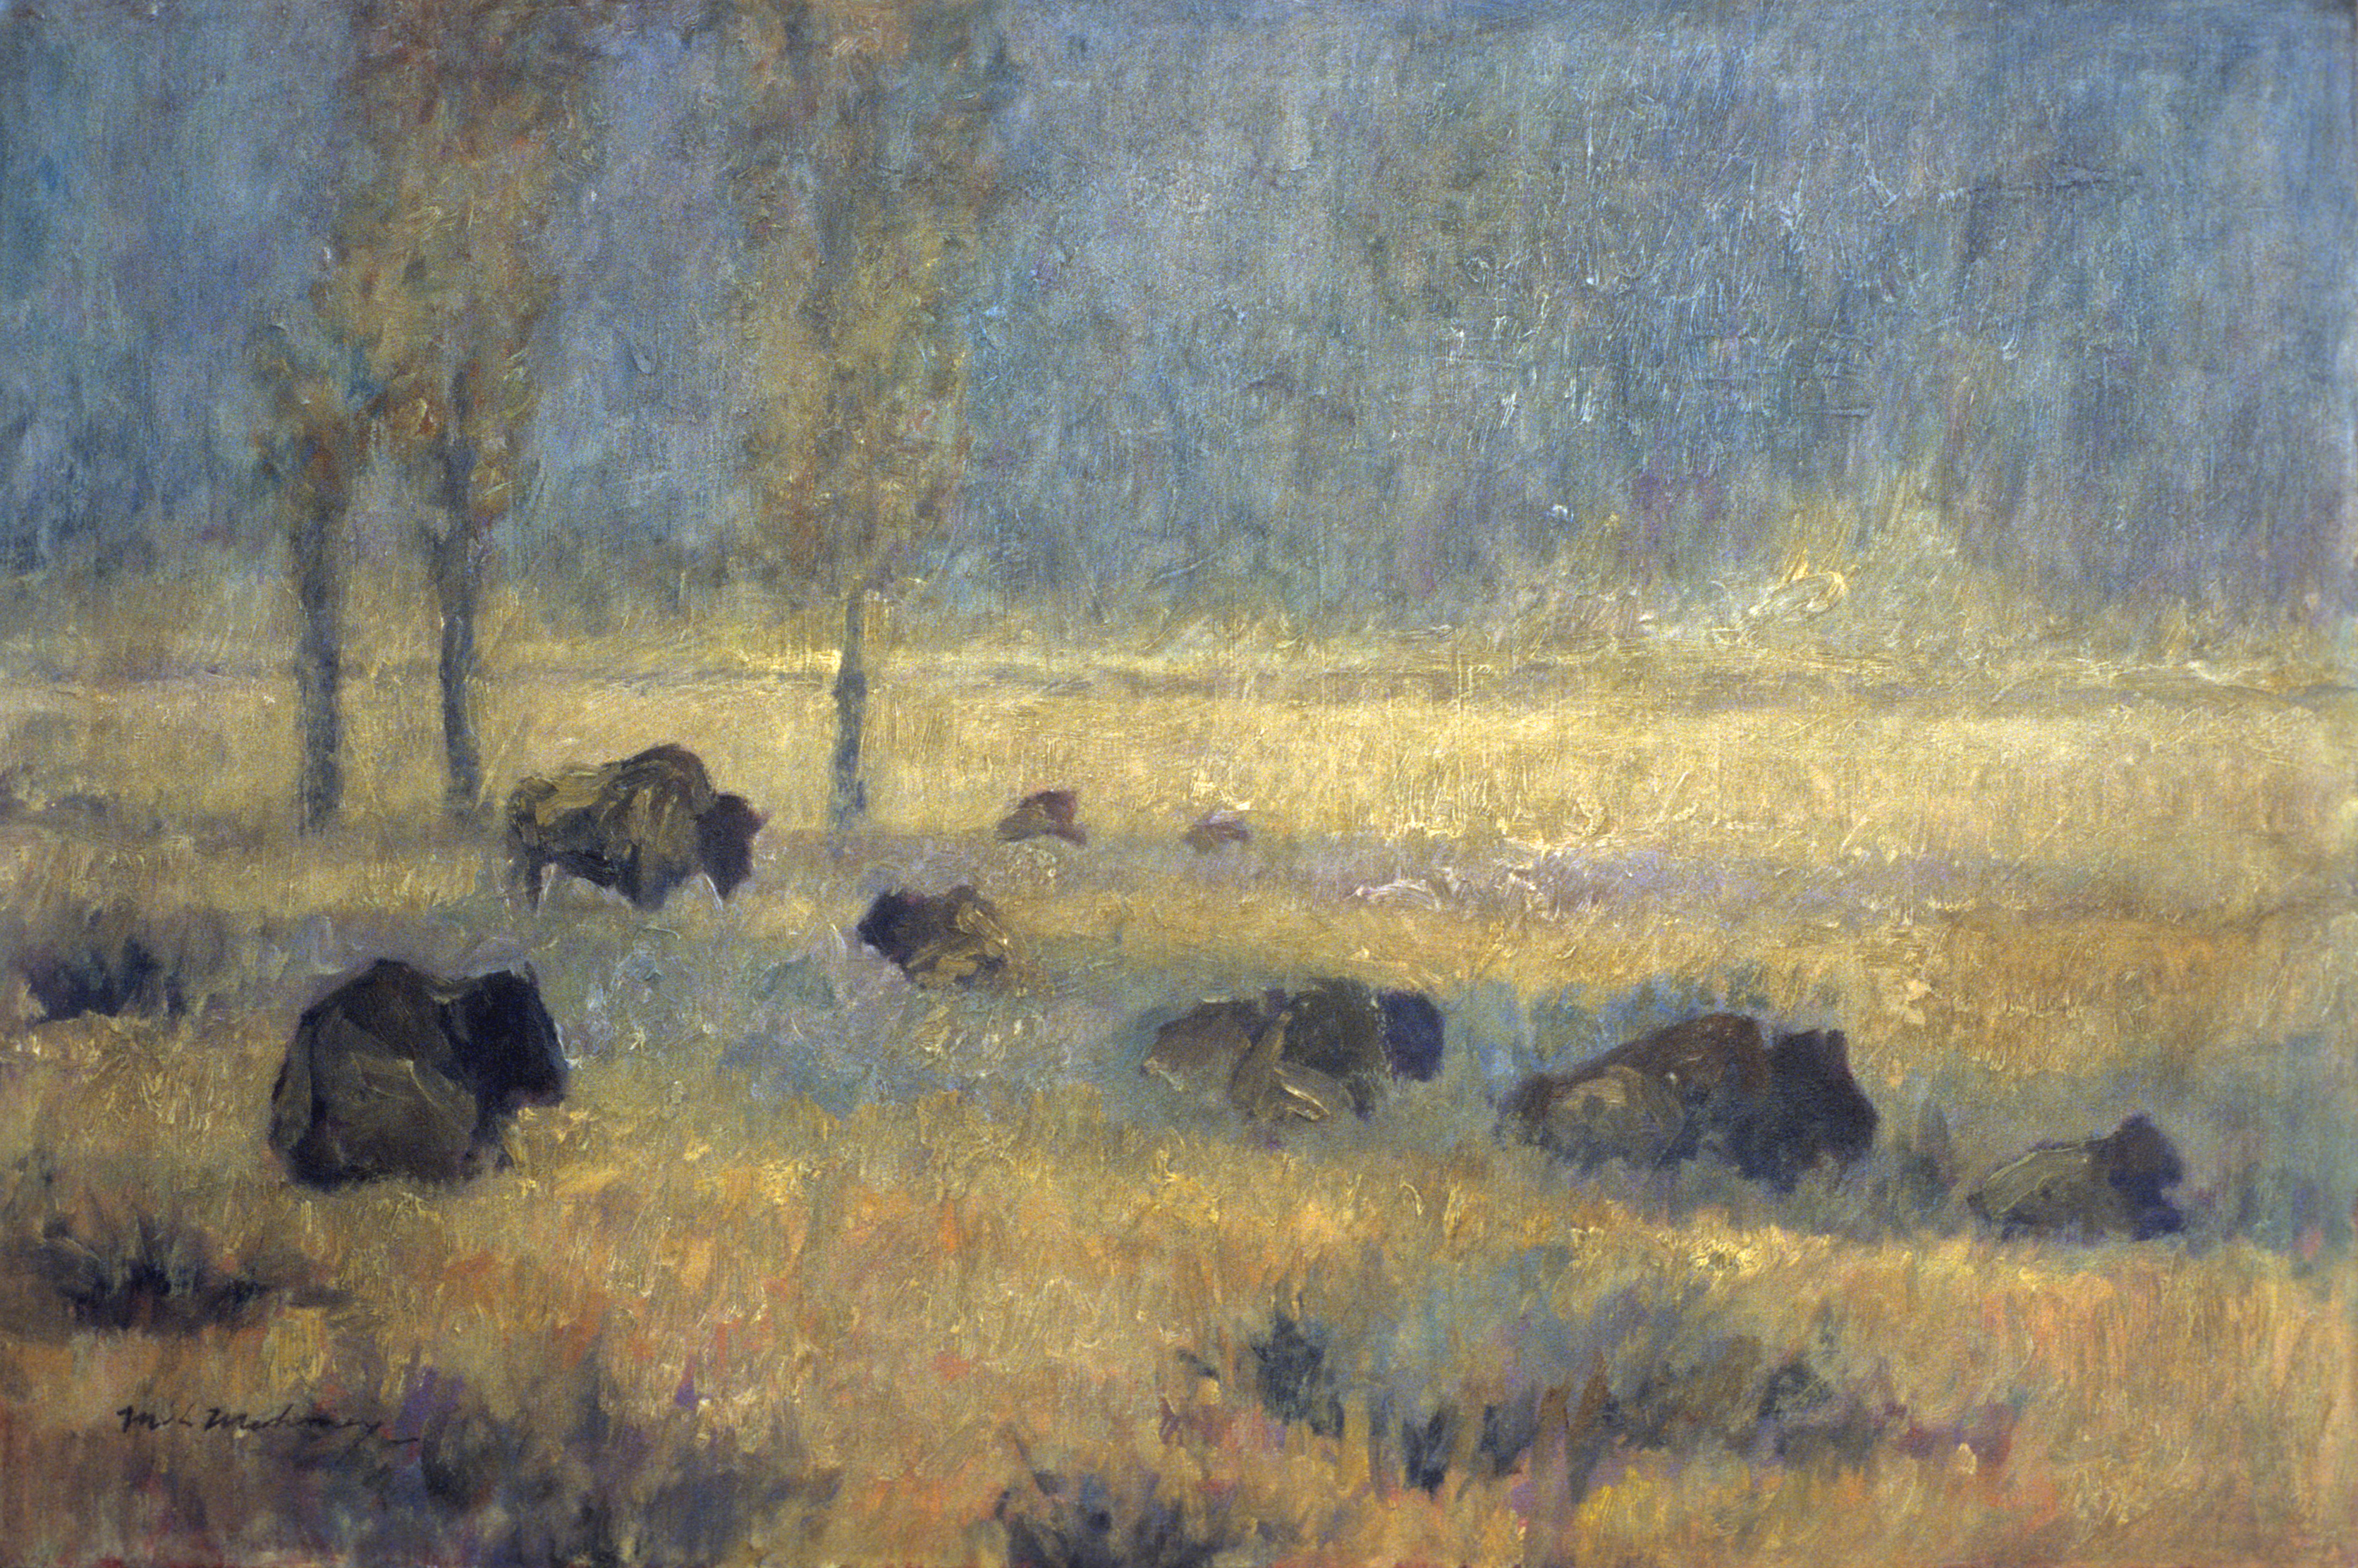 Lamar Bison 24x32 Oil.jpg